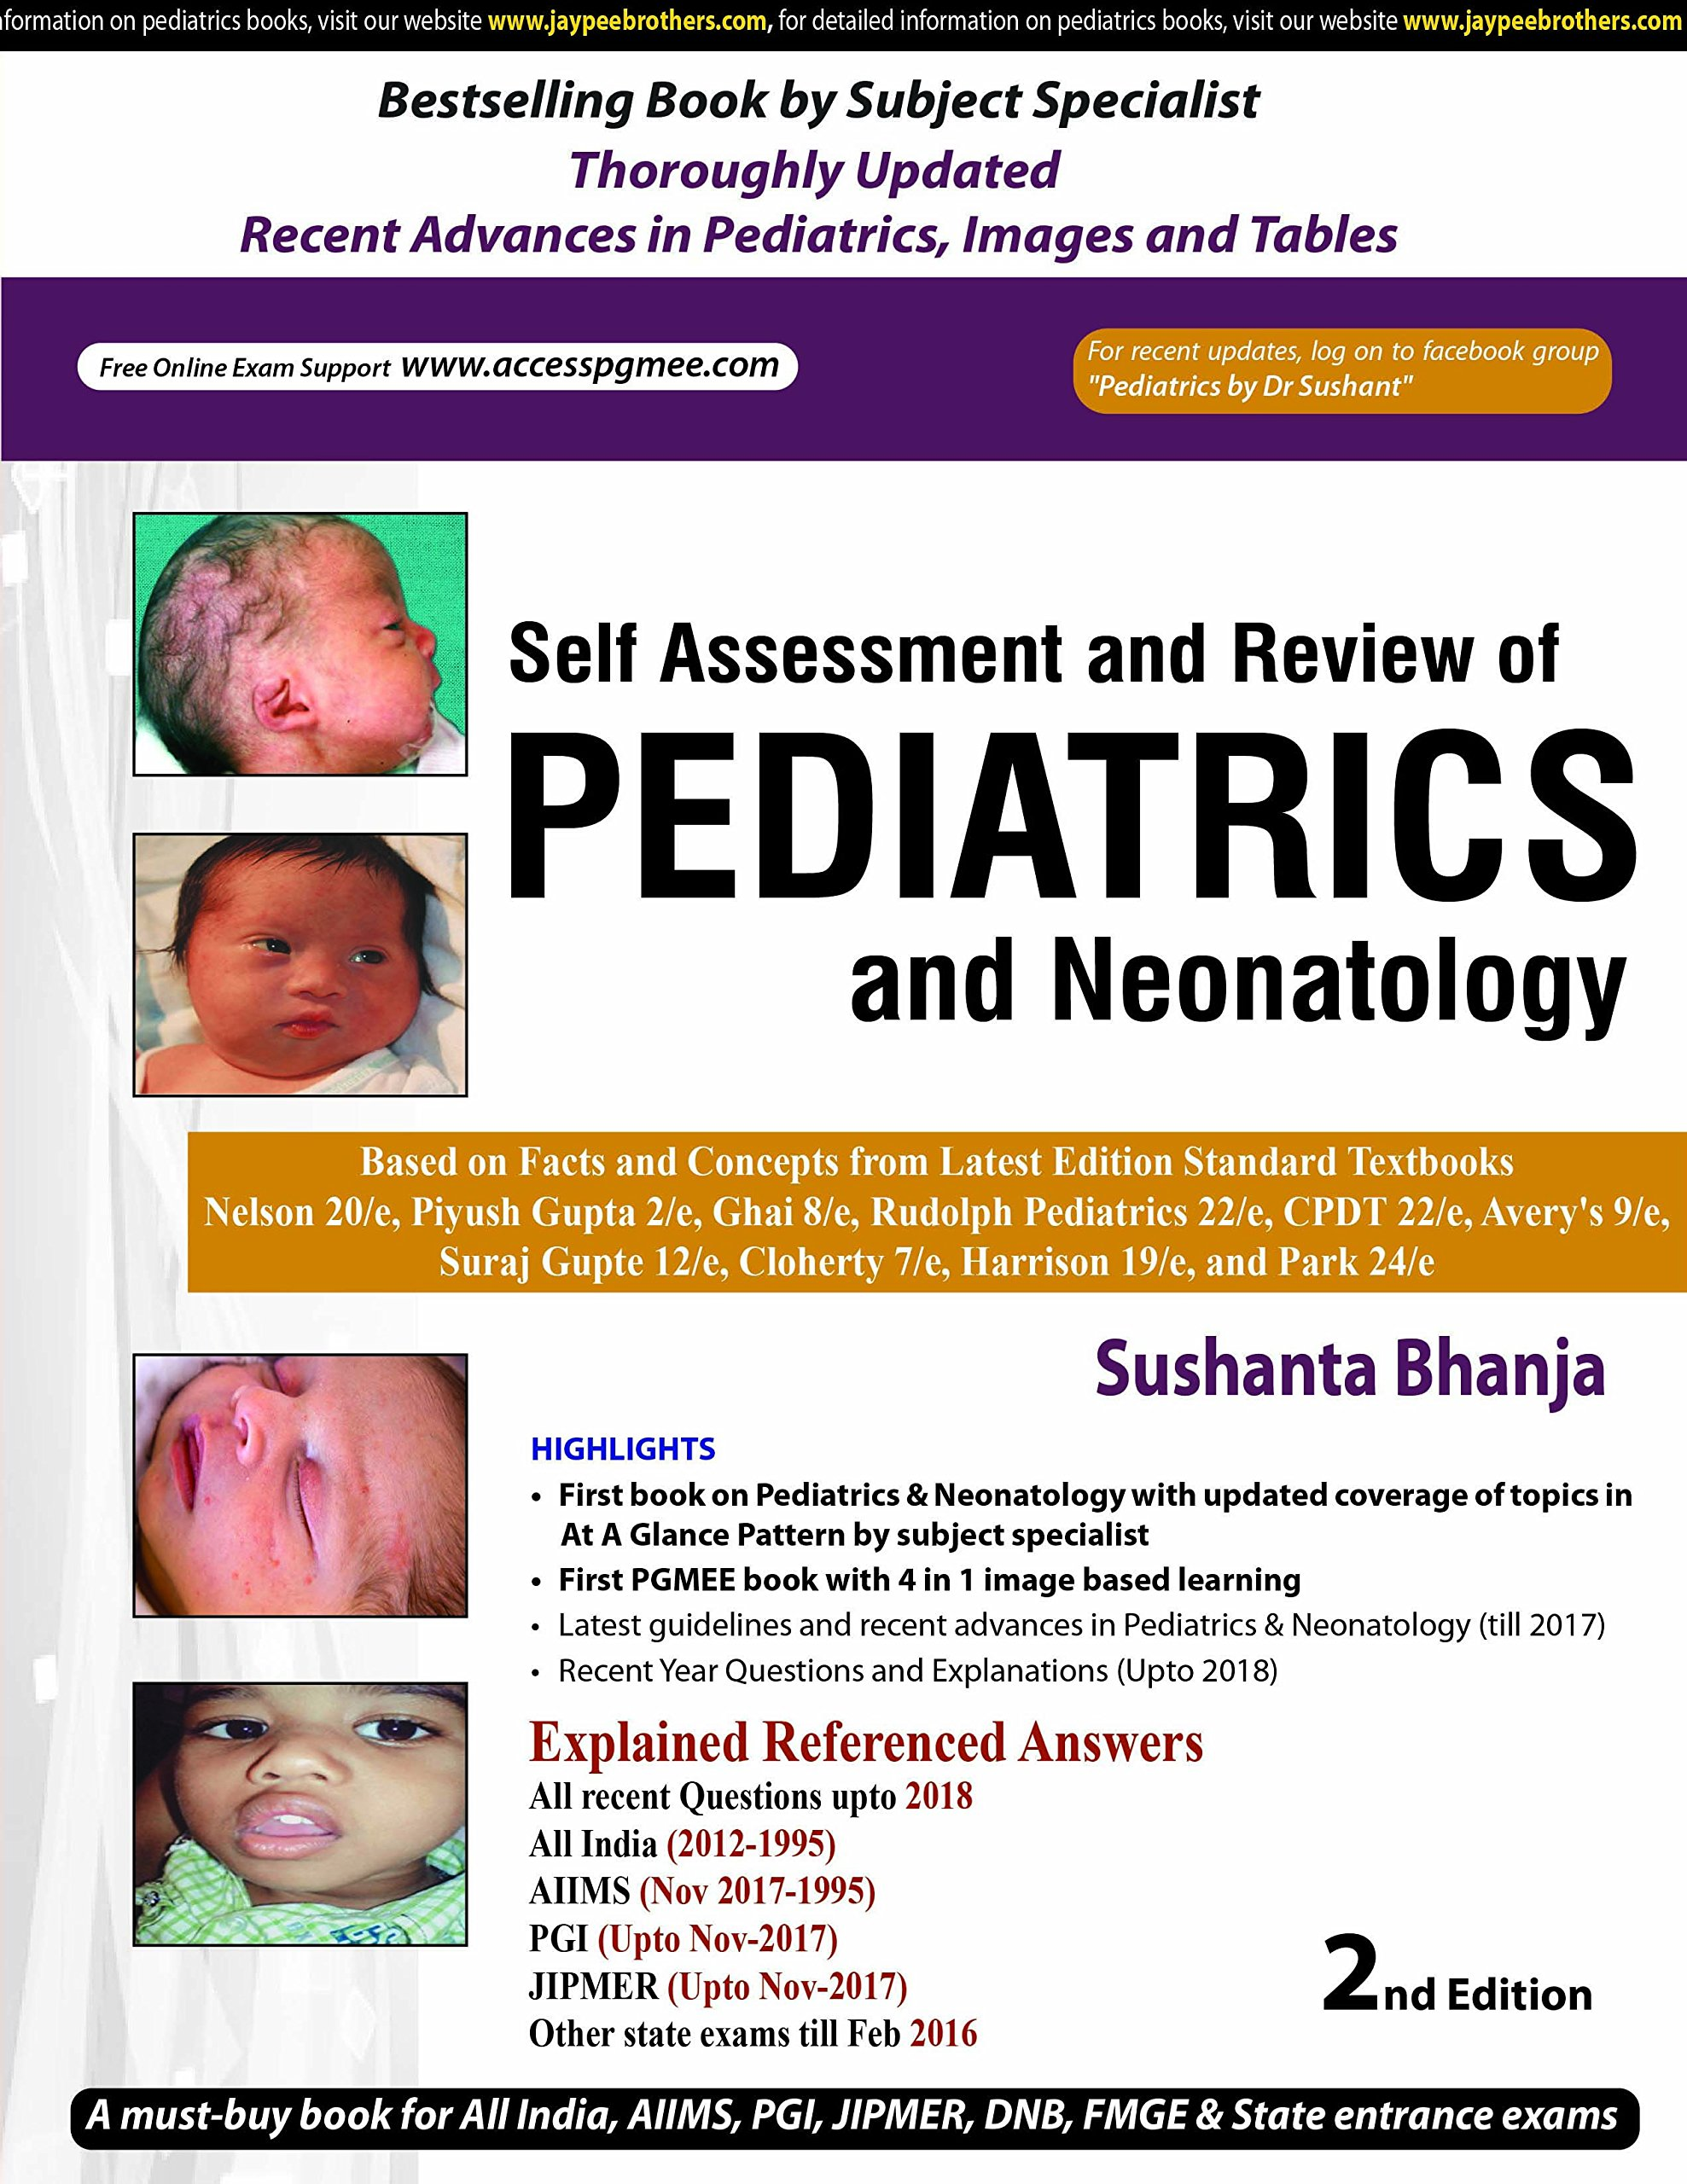 Buy Self-Assessment and Review of Pediatrics and Neonatology